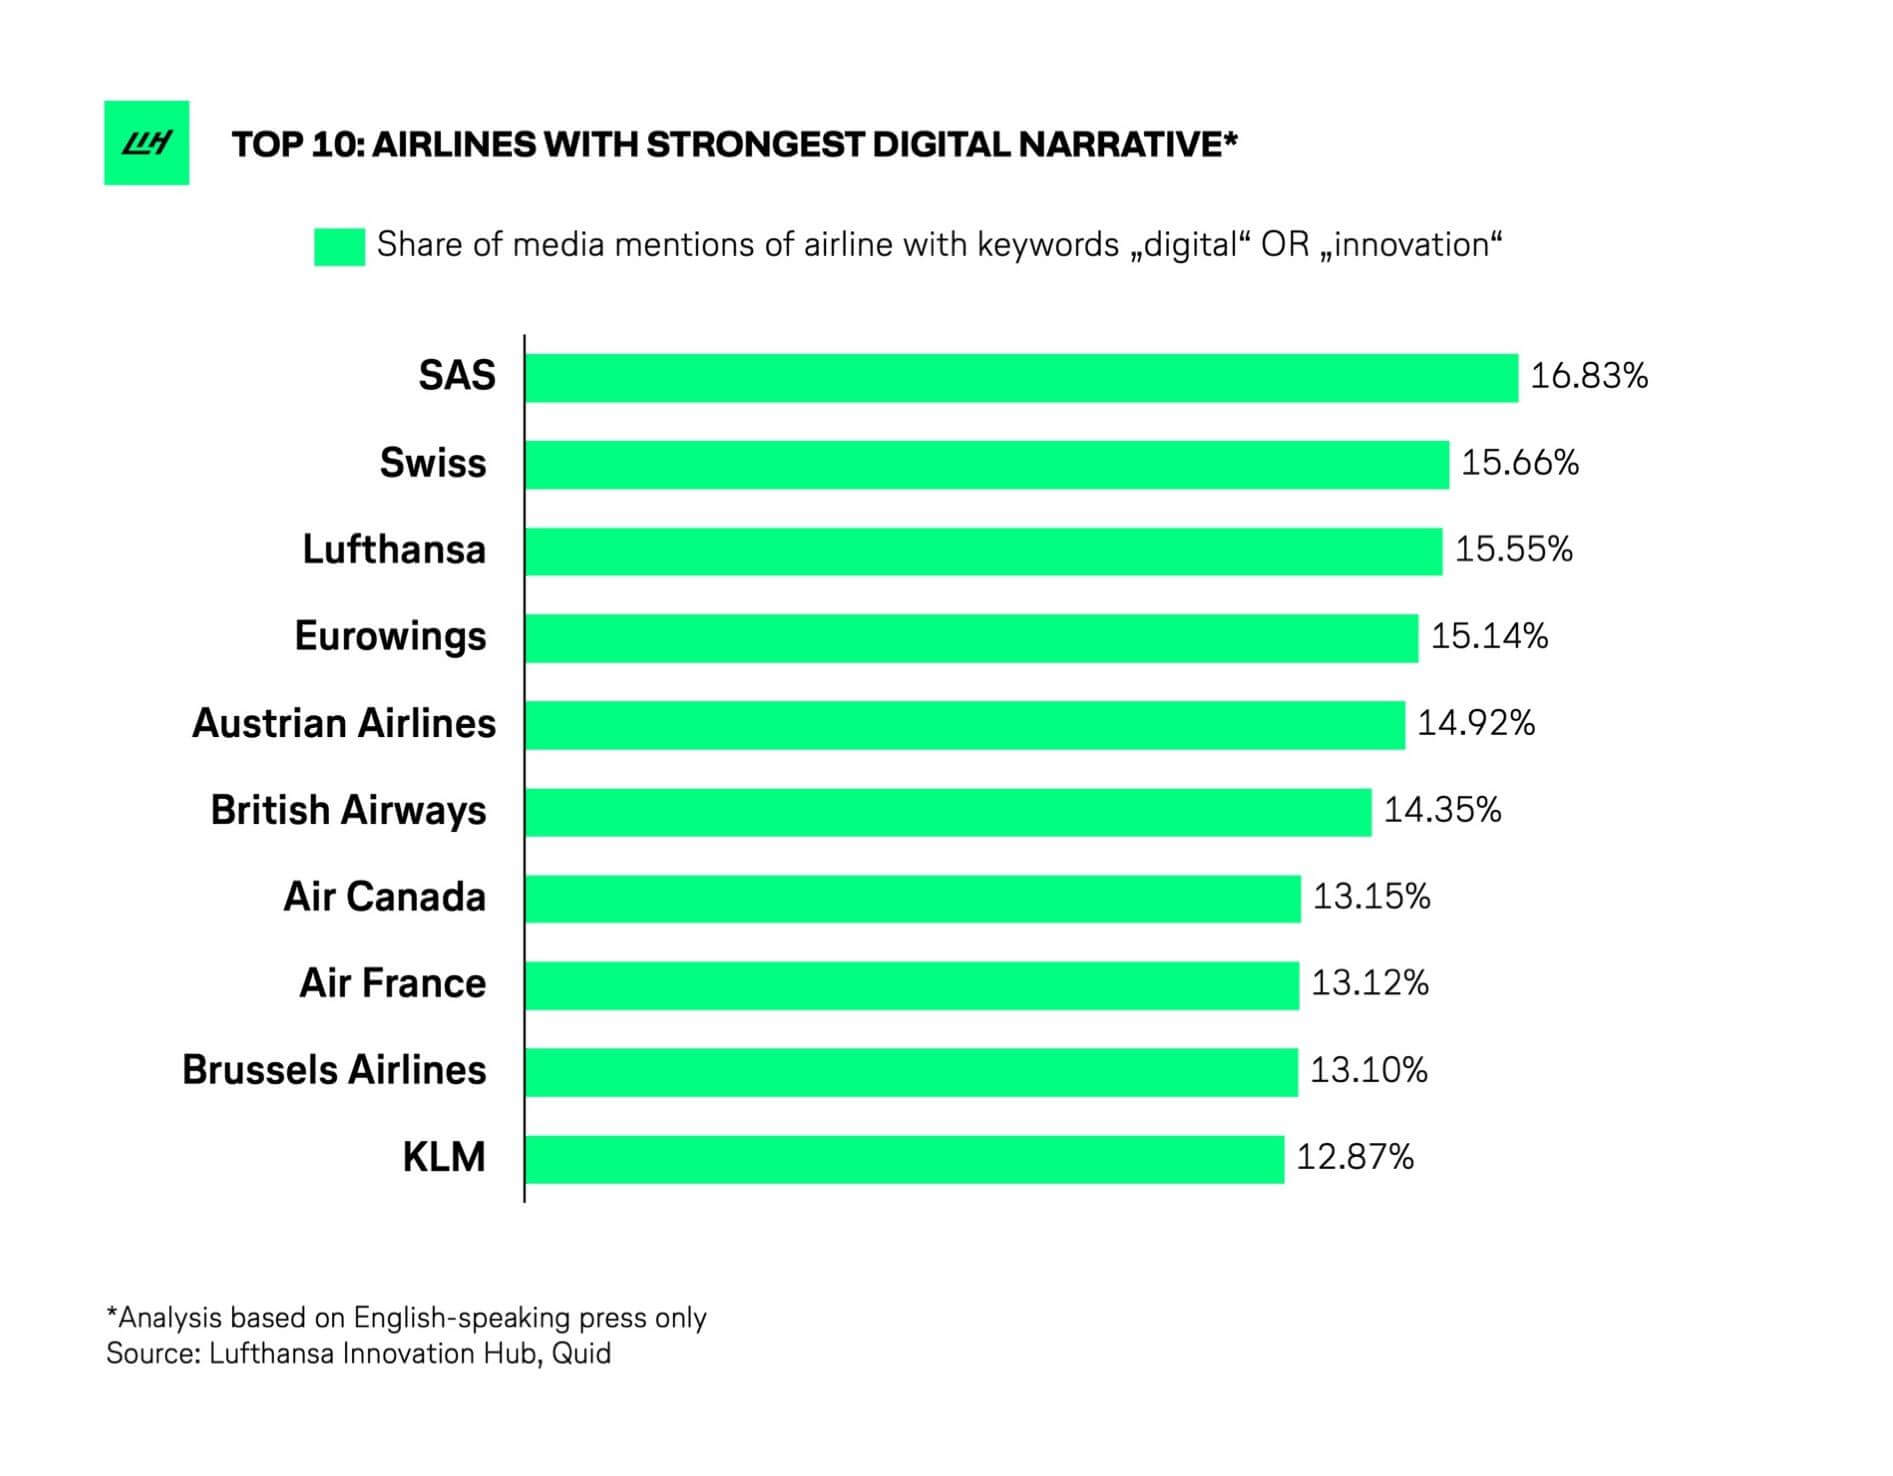 Digital and digital transformation is one of the key airline narrative